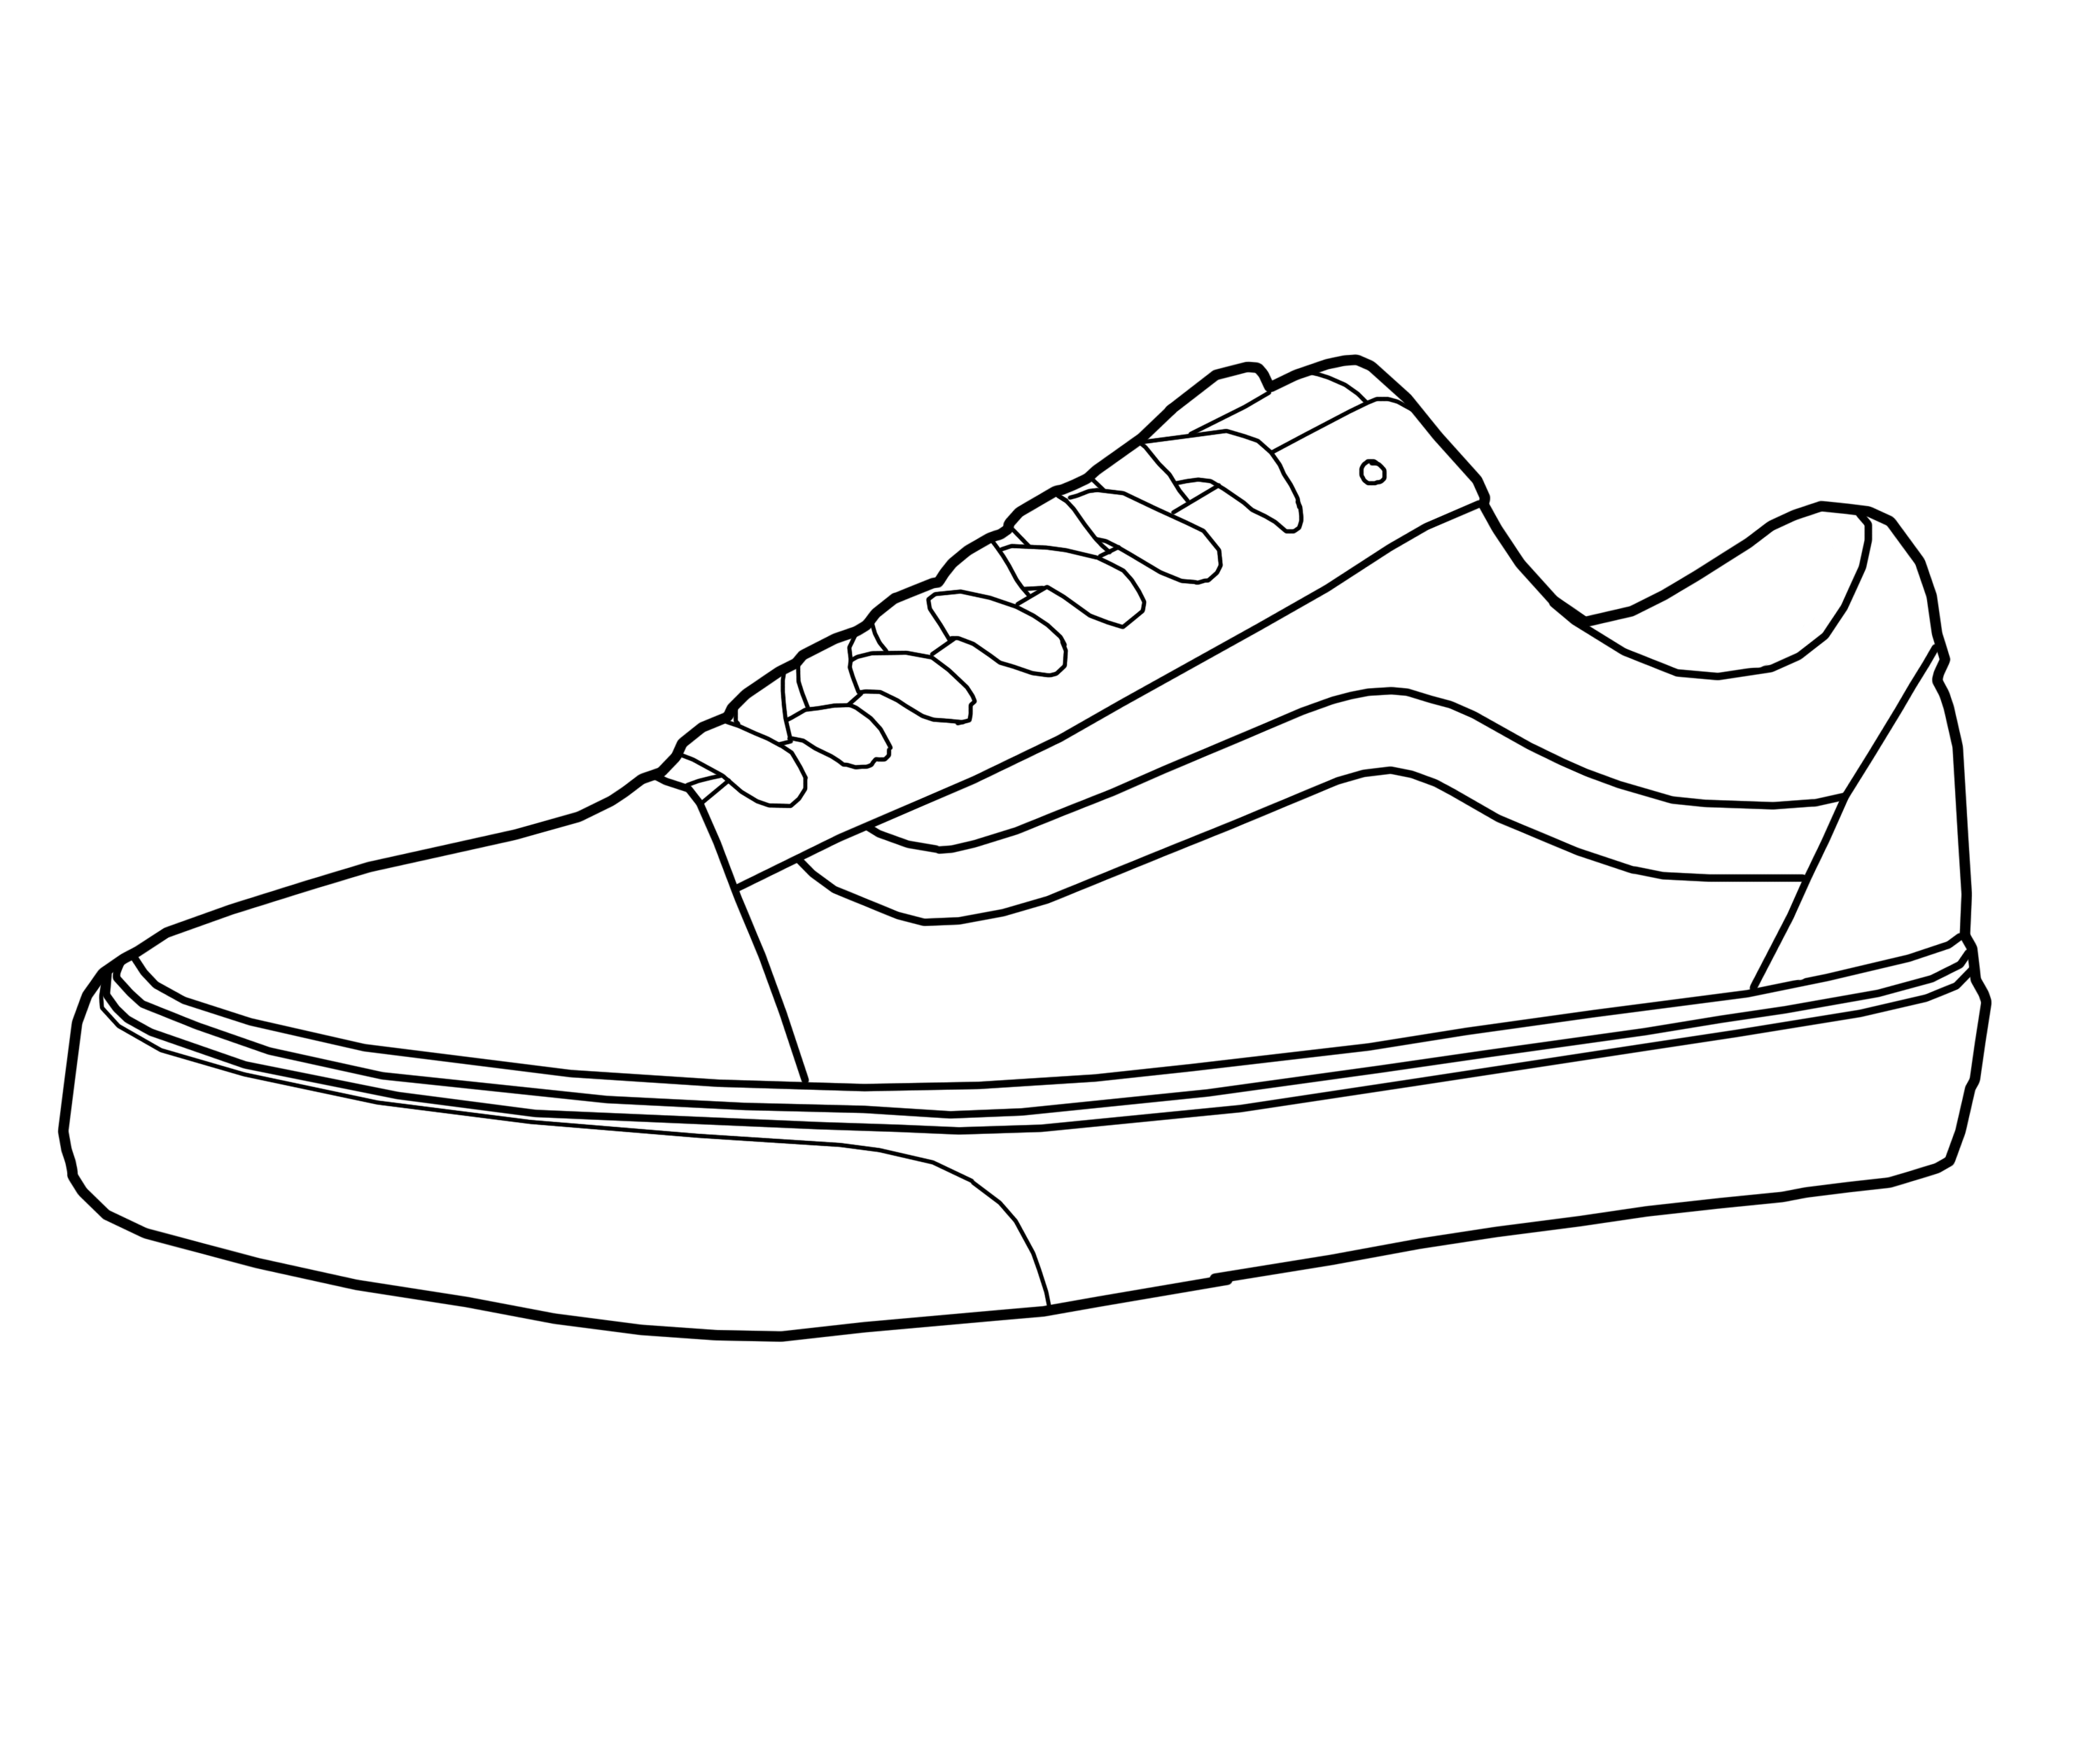 Drawn vans easy #15